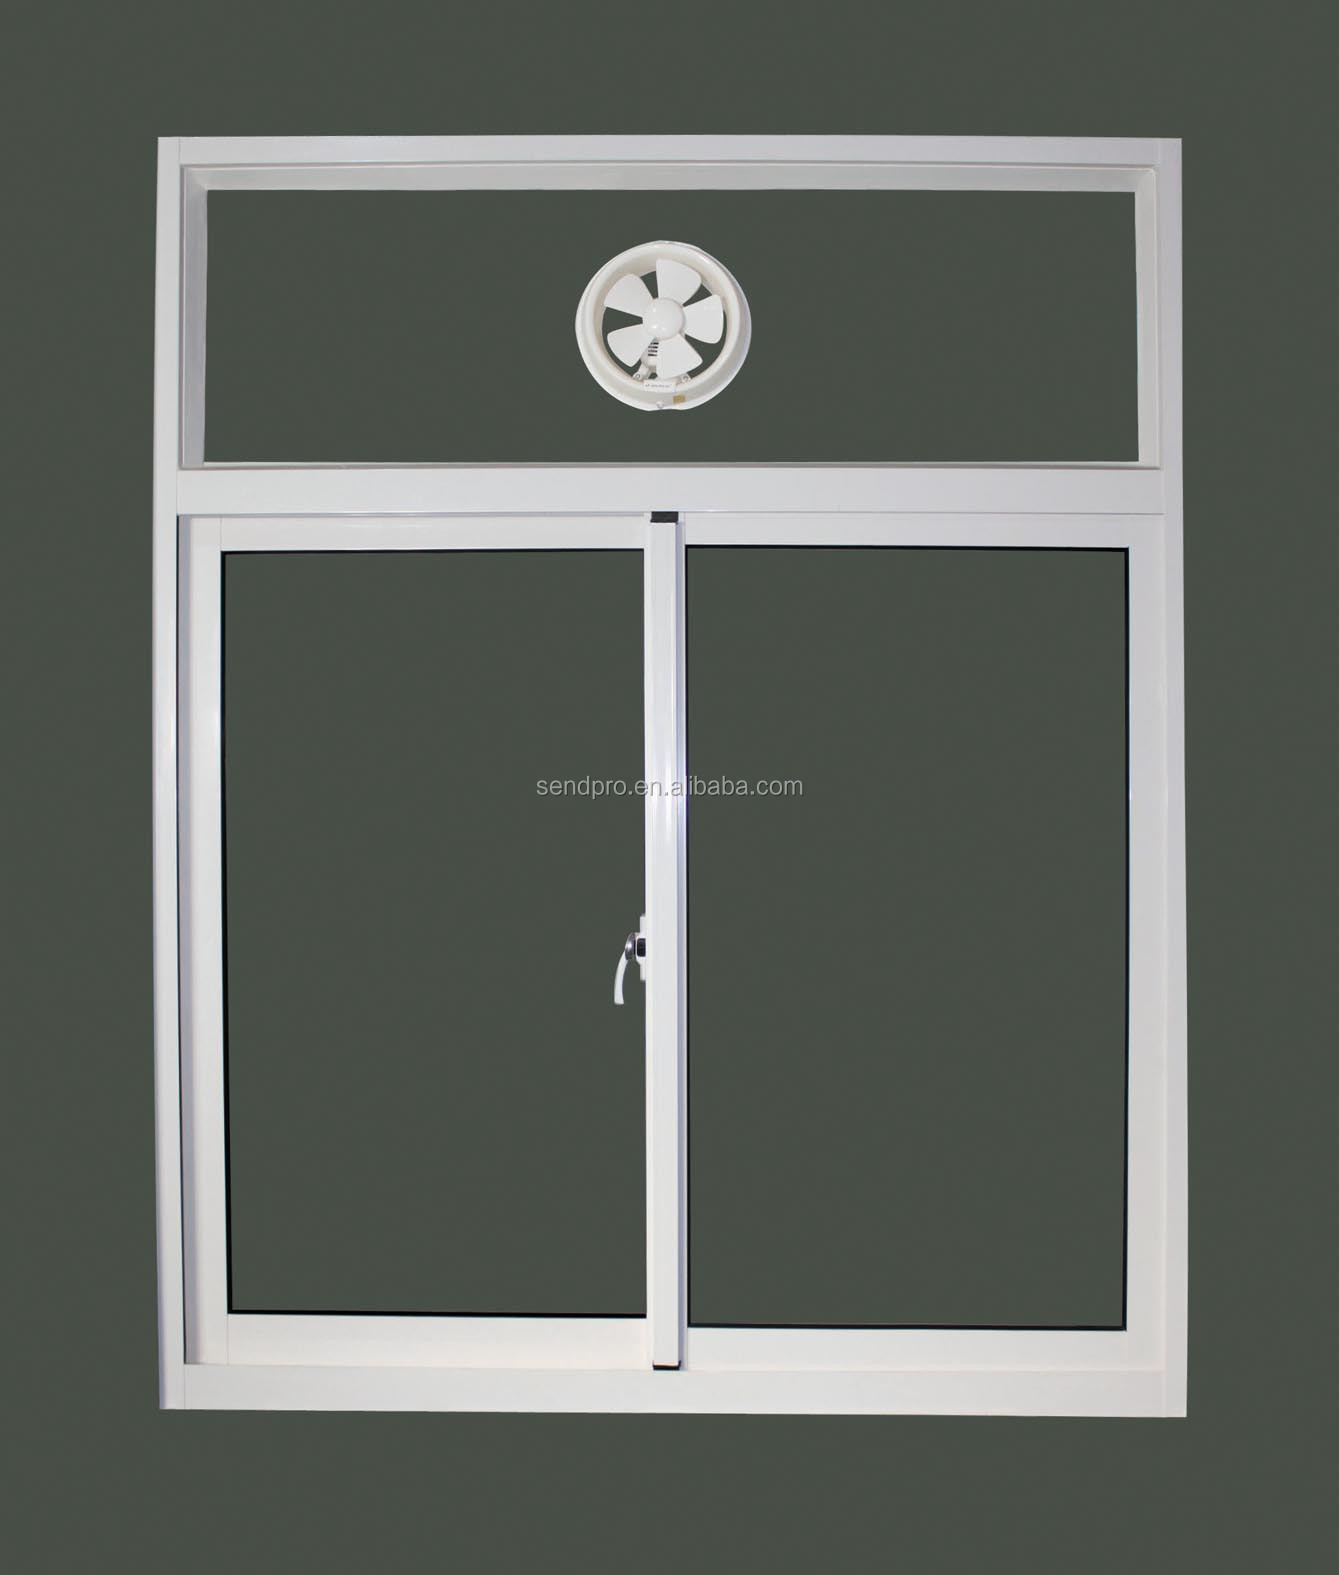 Exterior Aluminum Sliding Glass Window With Ventilation